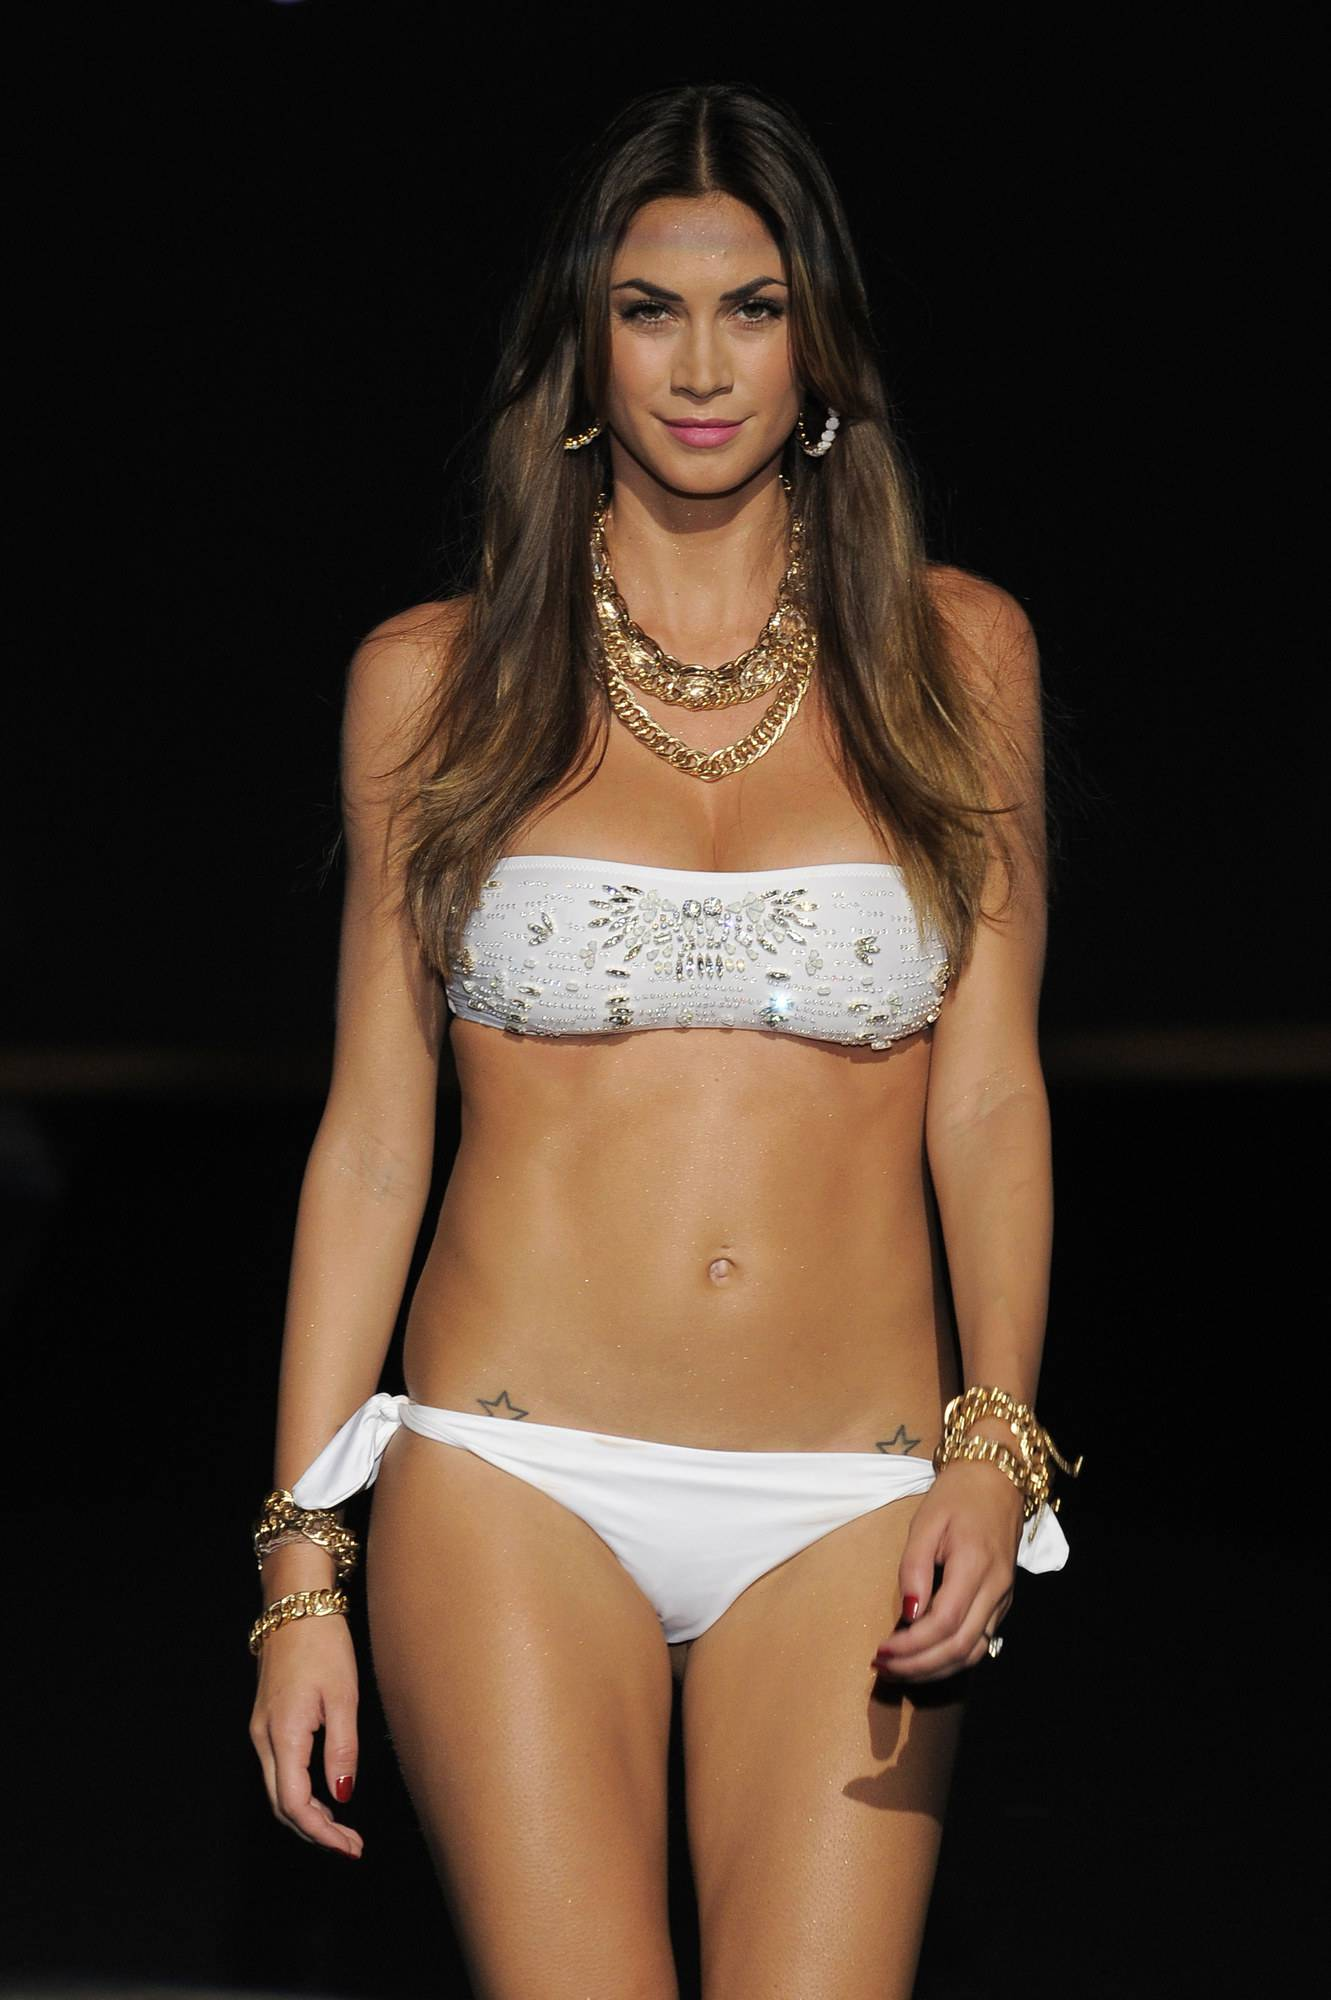 melissa satta - photo #48